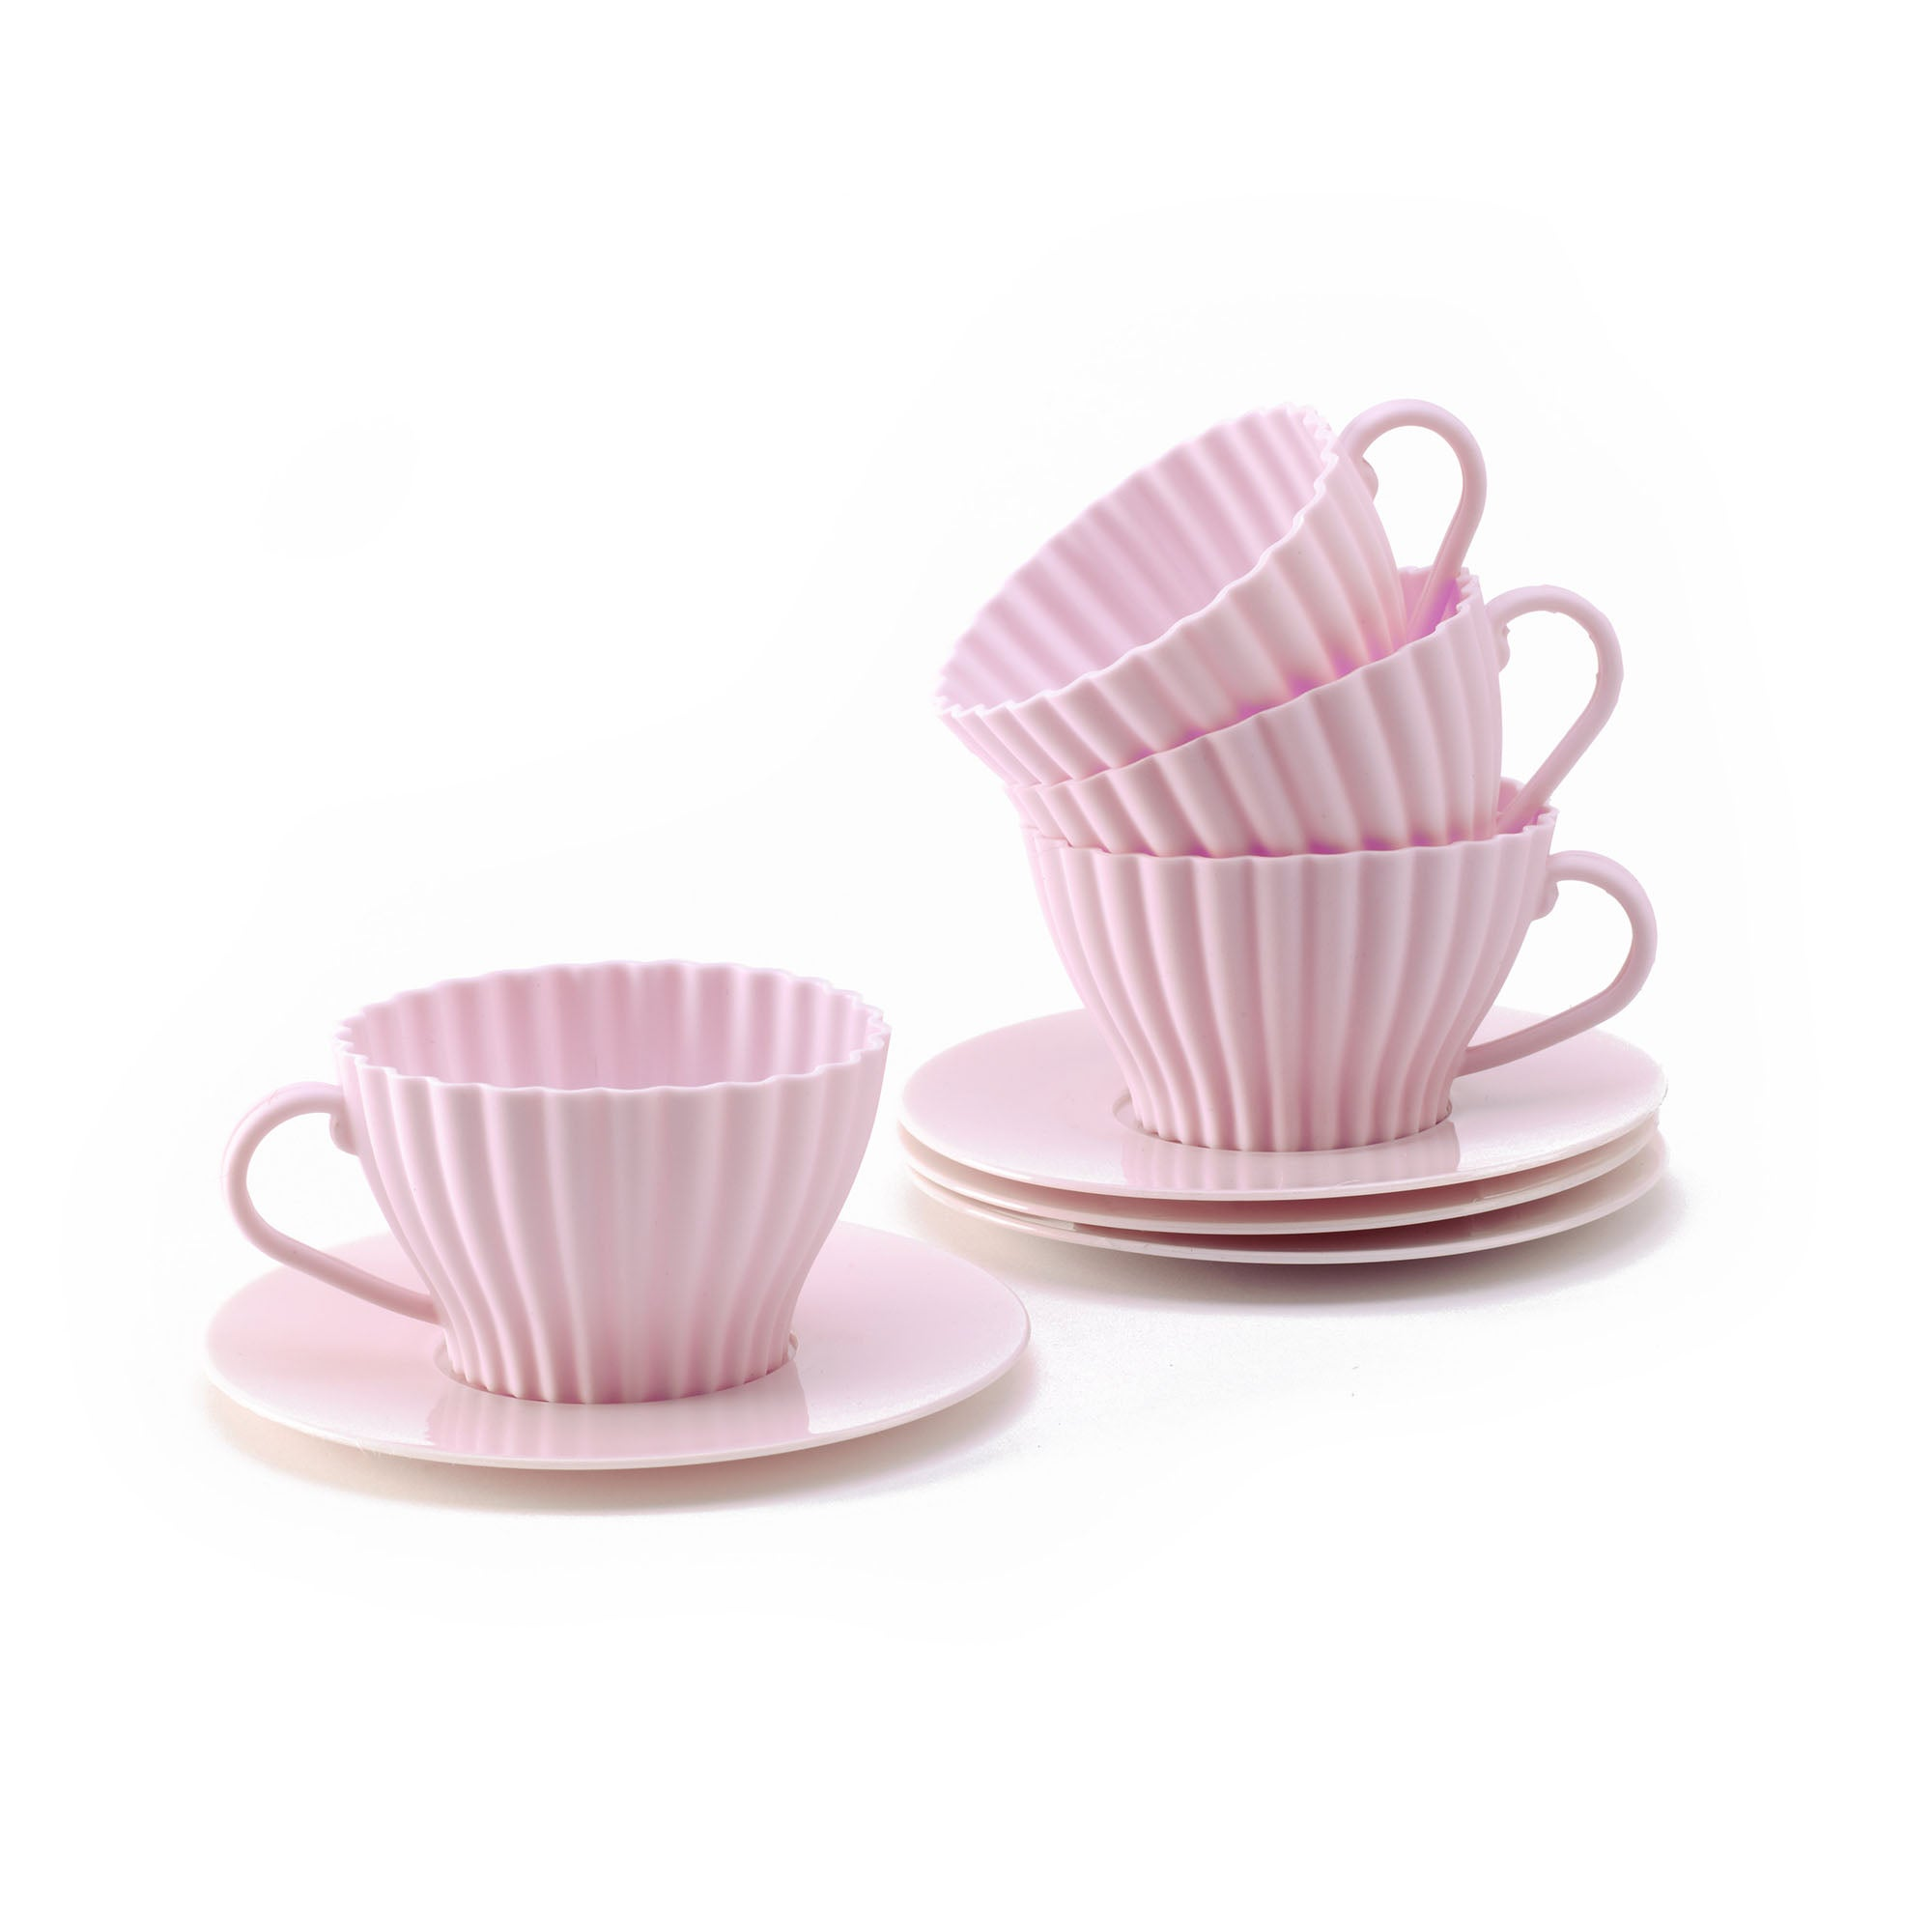 Set of Four Pink Silicone Teacup Cake Moulds